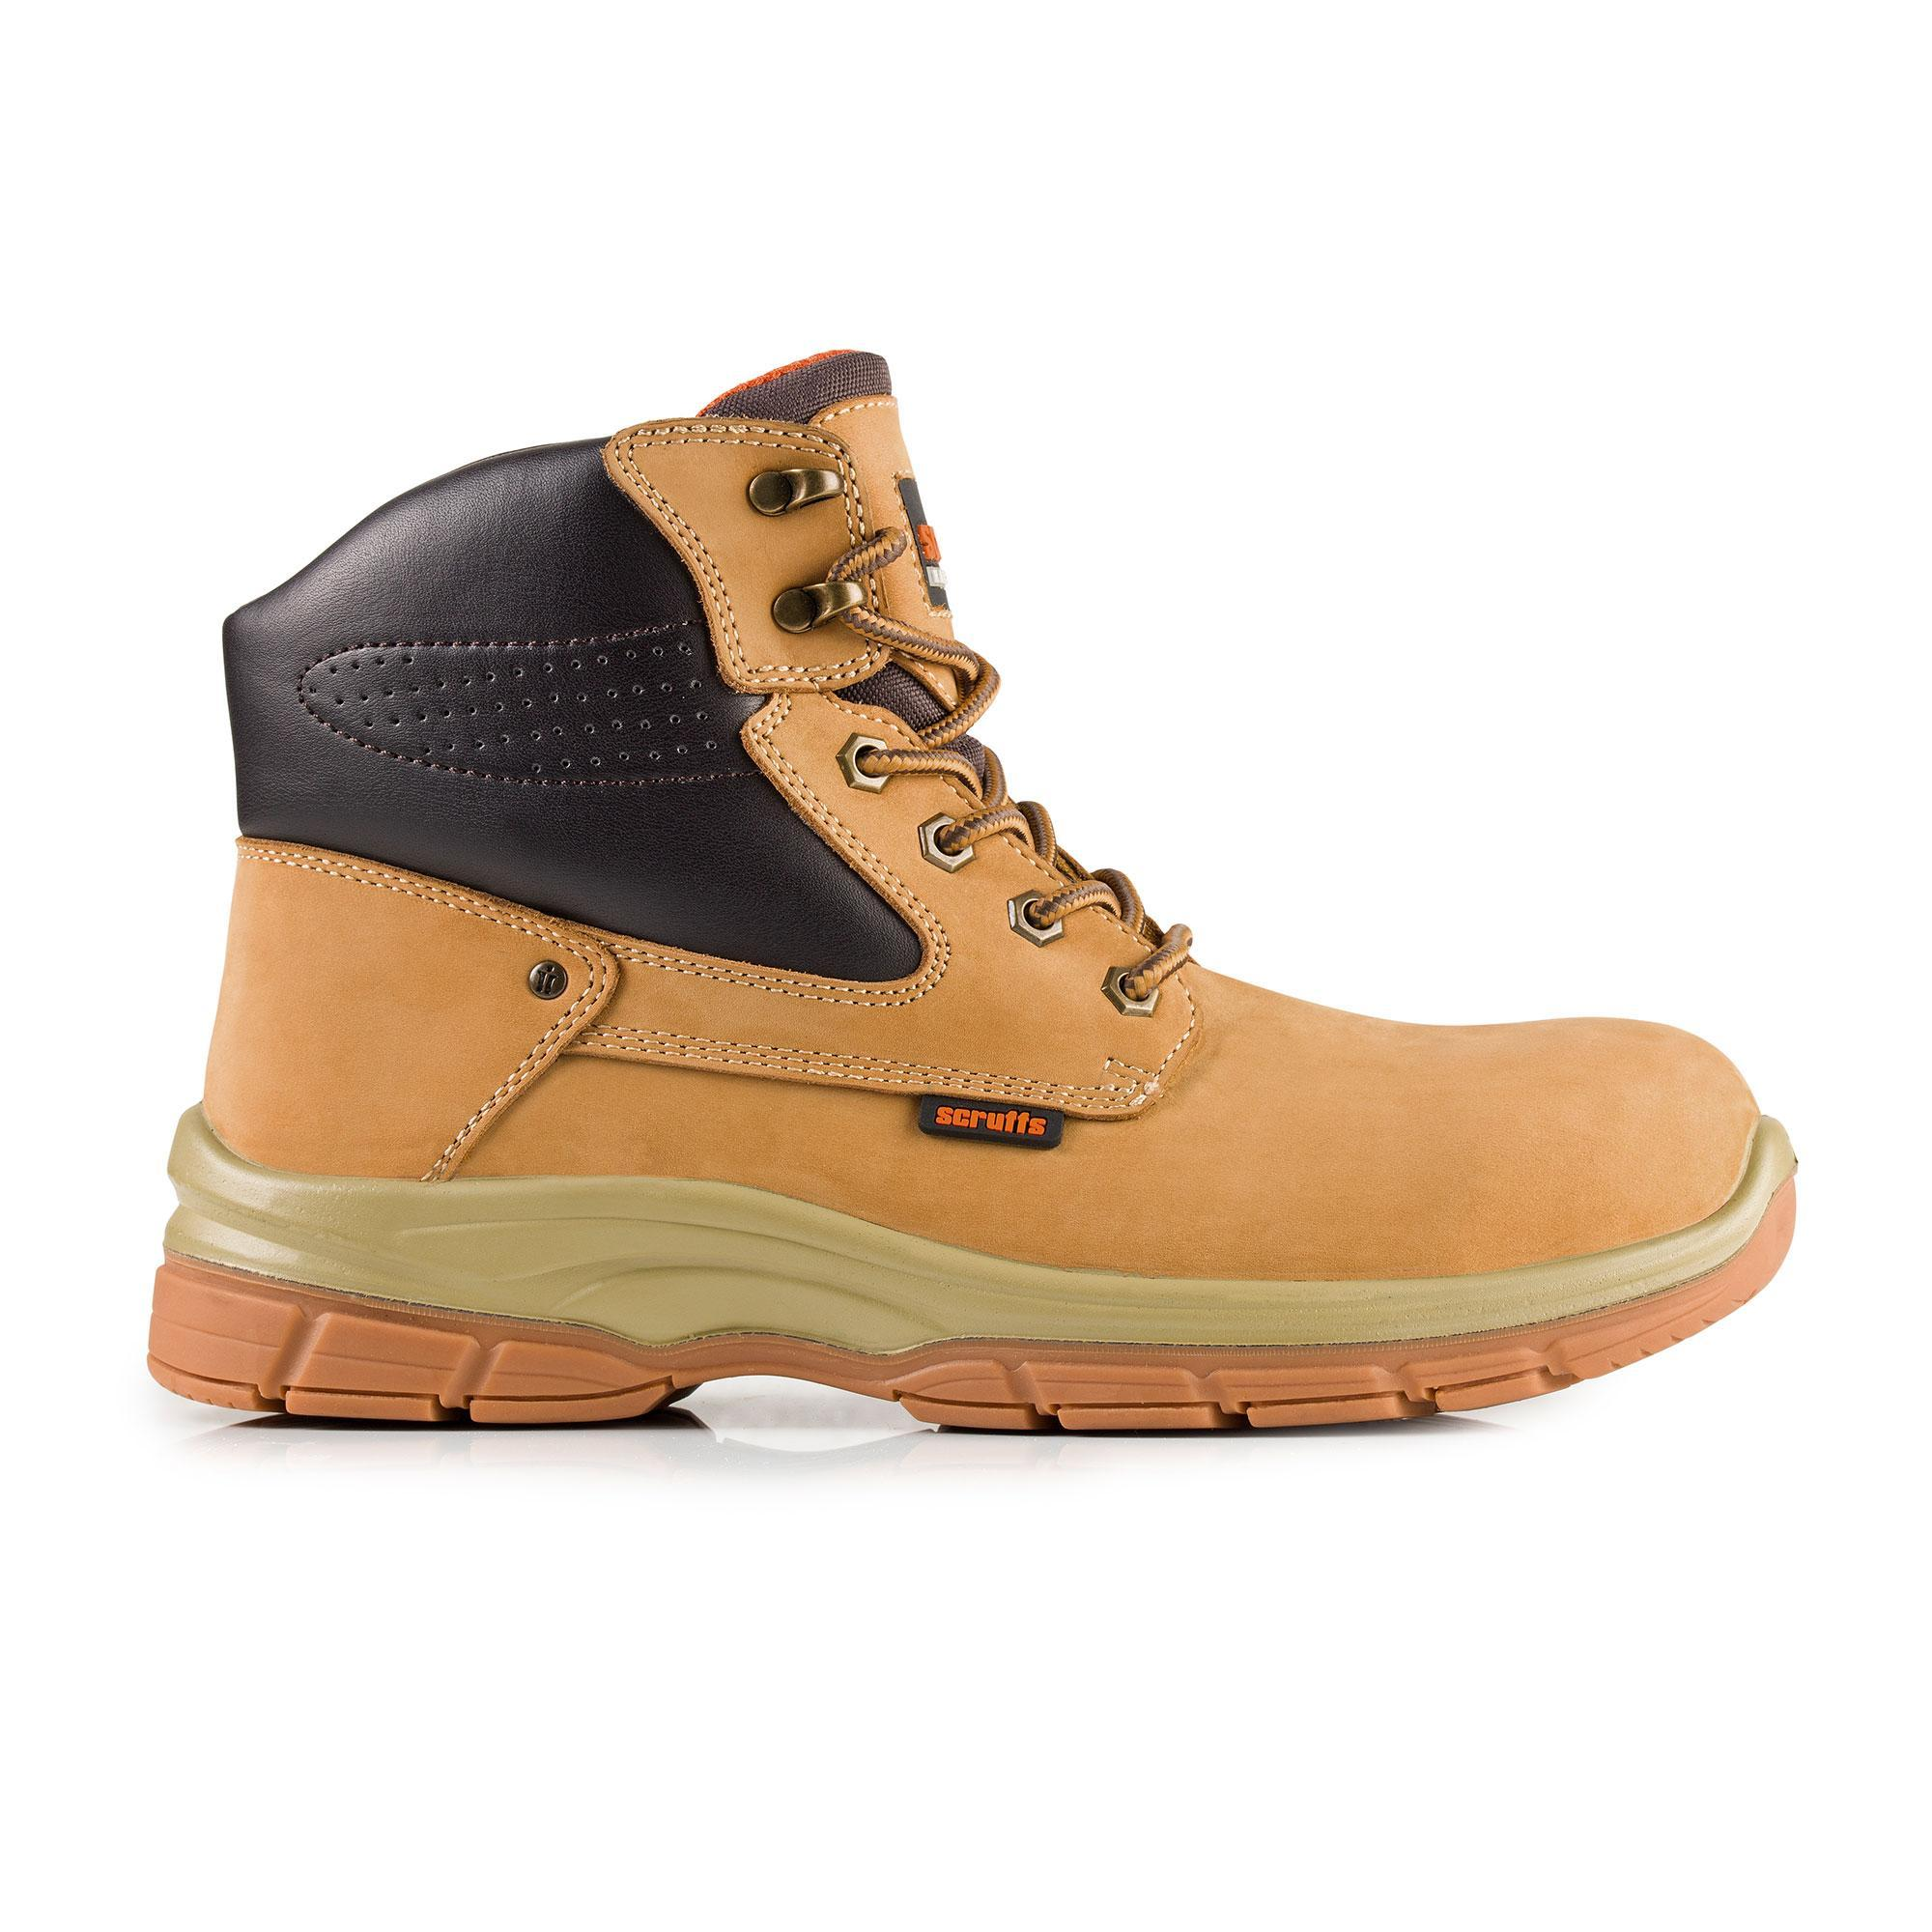 ace588a7f6f Scruffs Hatton Safety Boots